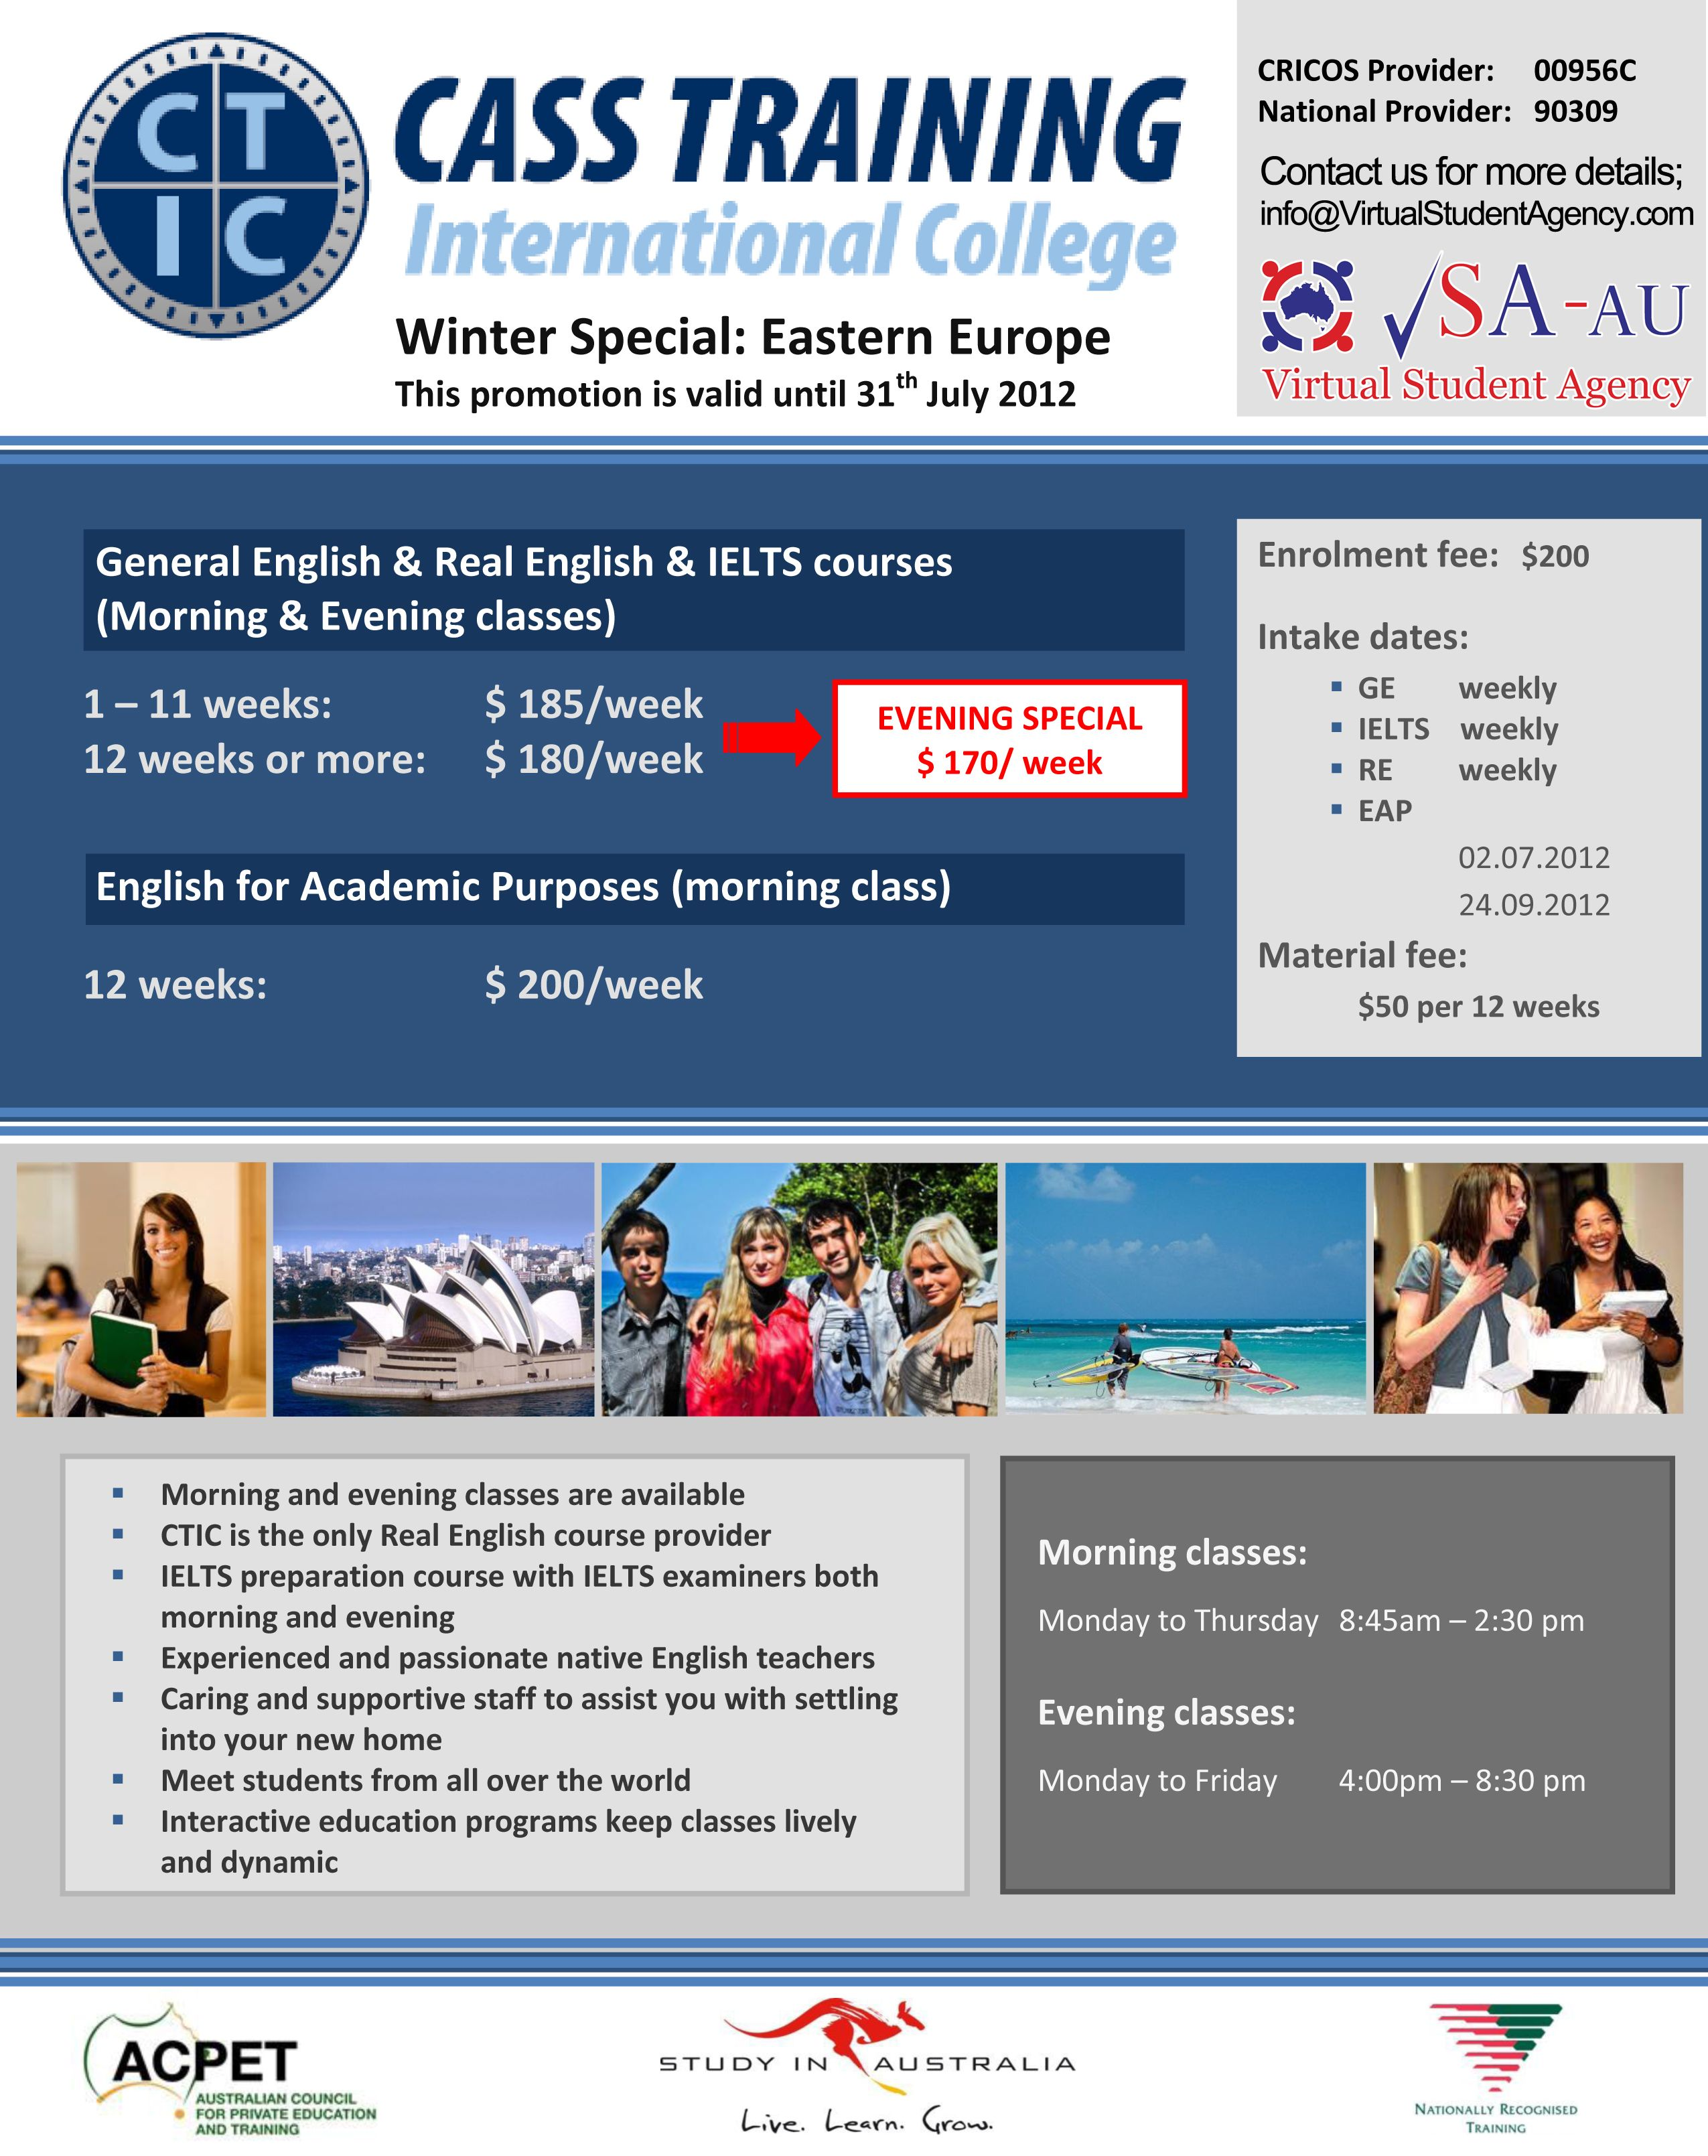 English courses are available from $175 per week for Easter European students at CTIS until the end of July 2012.    Contact us for more details;  http://www.VirtualStudentAgency.com/contact-us